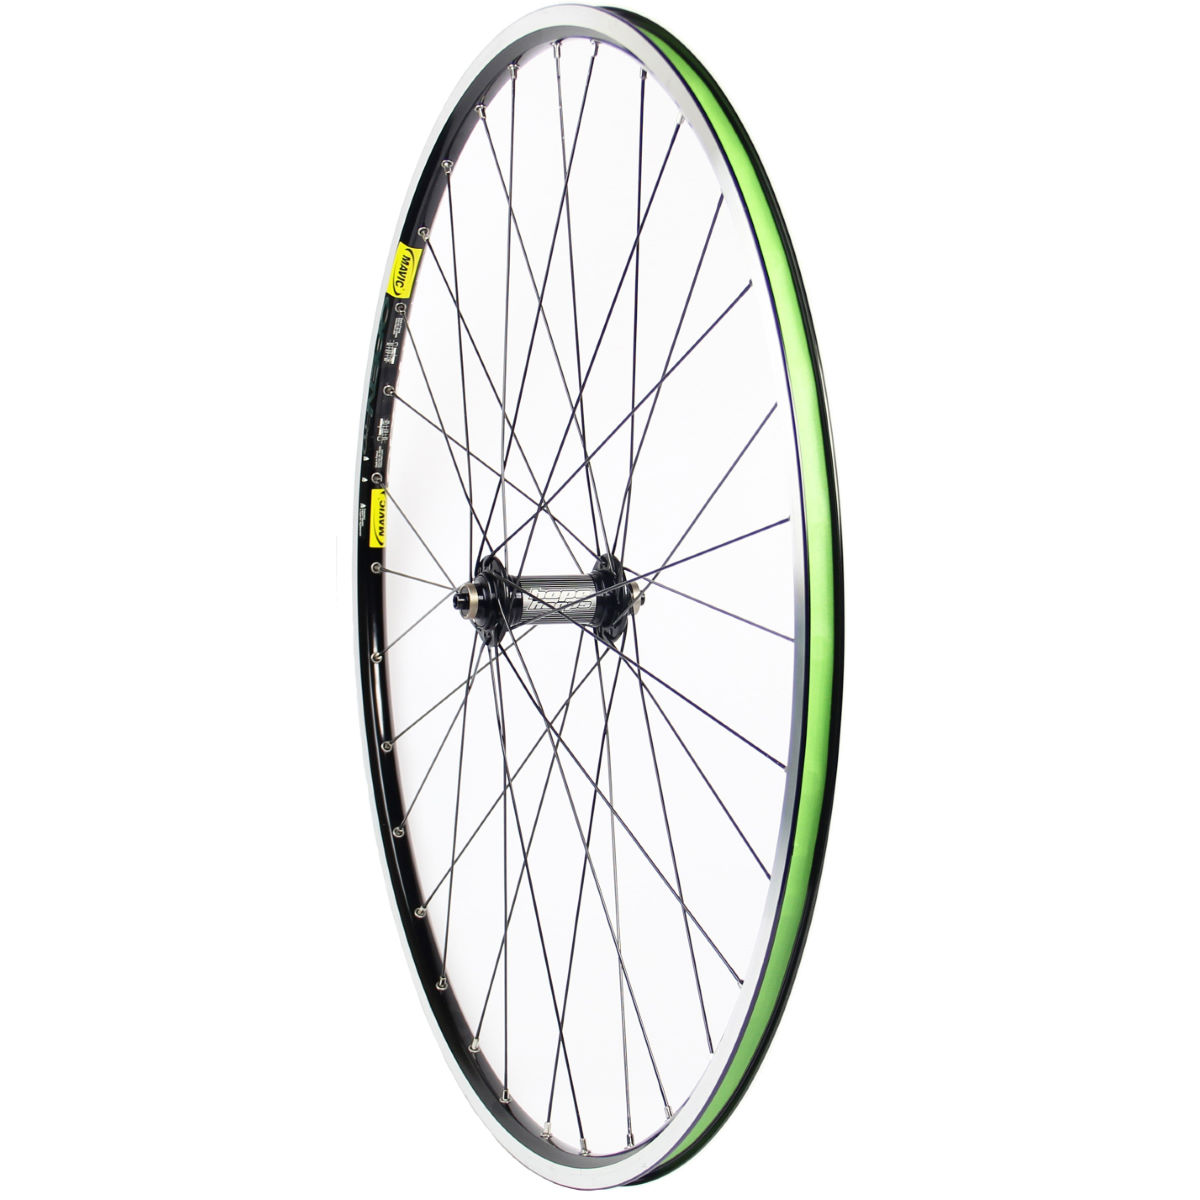 Roue avant Hope Hoops Mono RS - Open Pro Noir Roues performance